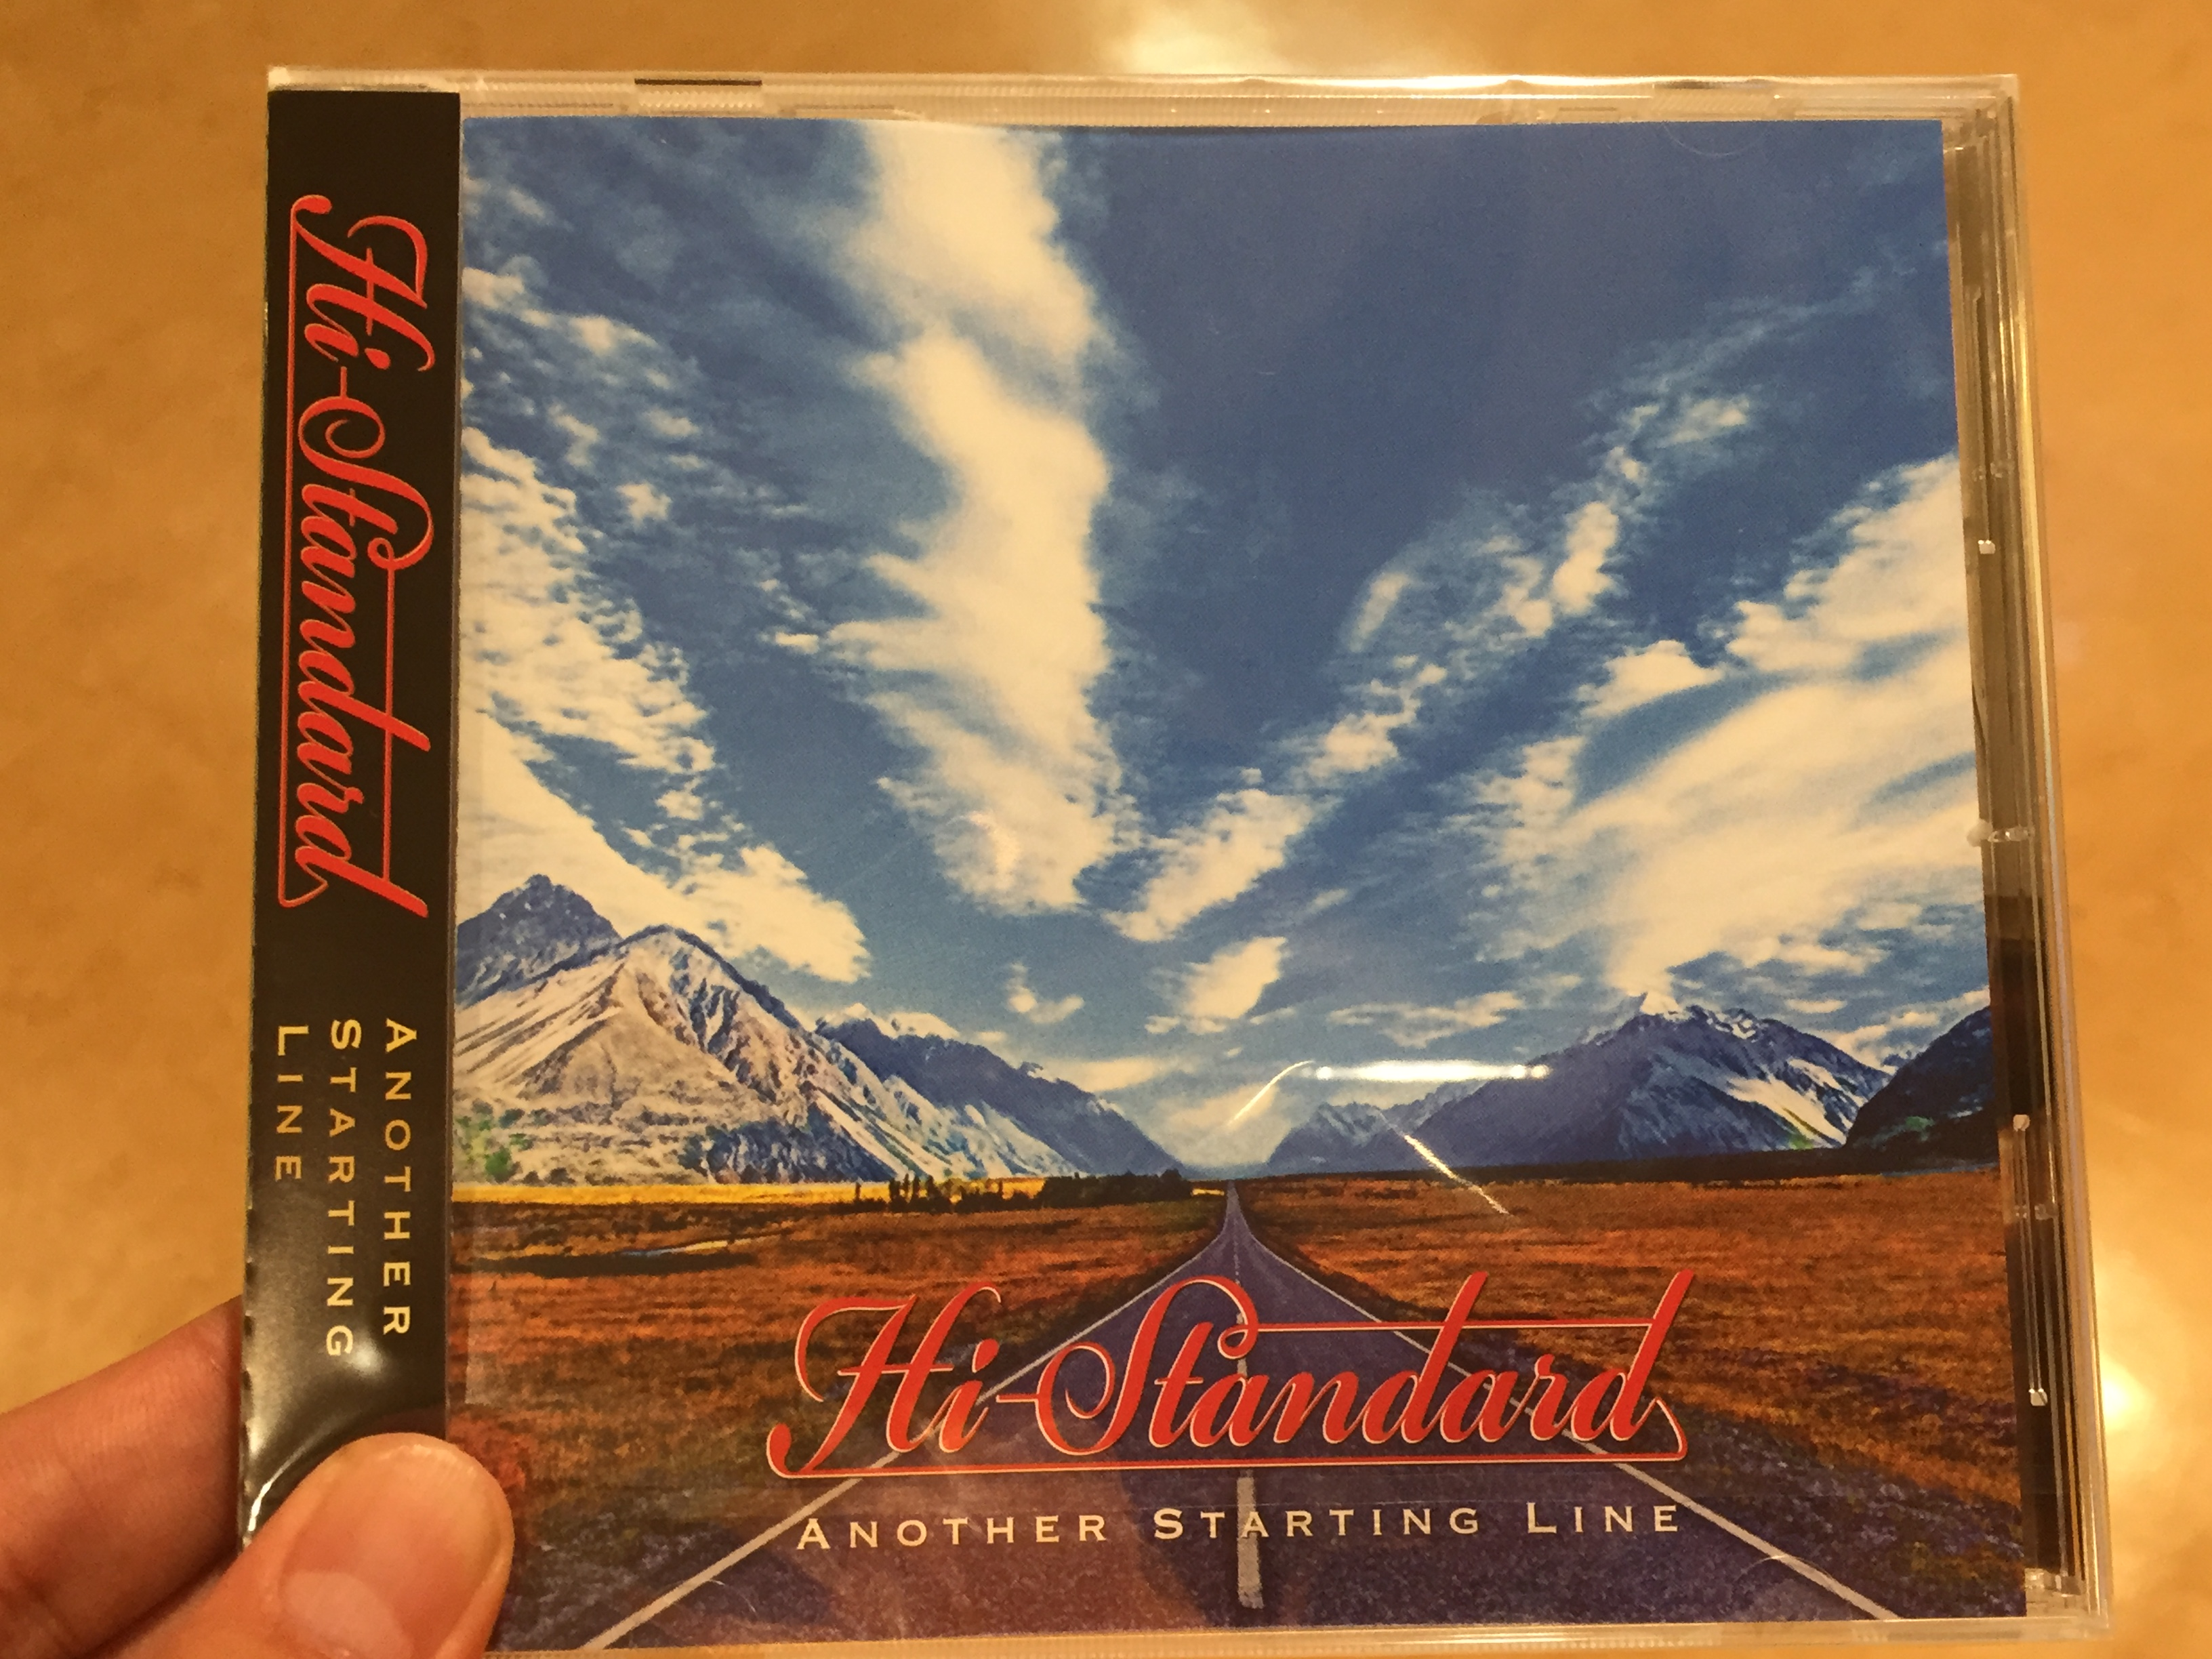 Hi-STANDARD新譜「ANOTHER STARTING LINE」